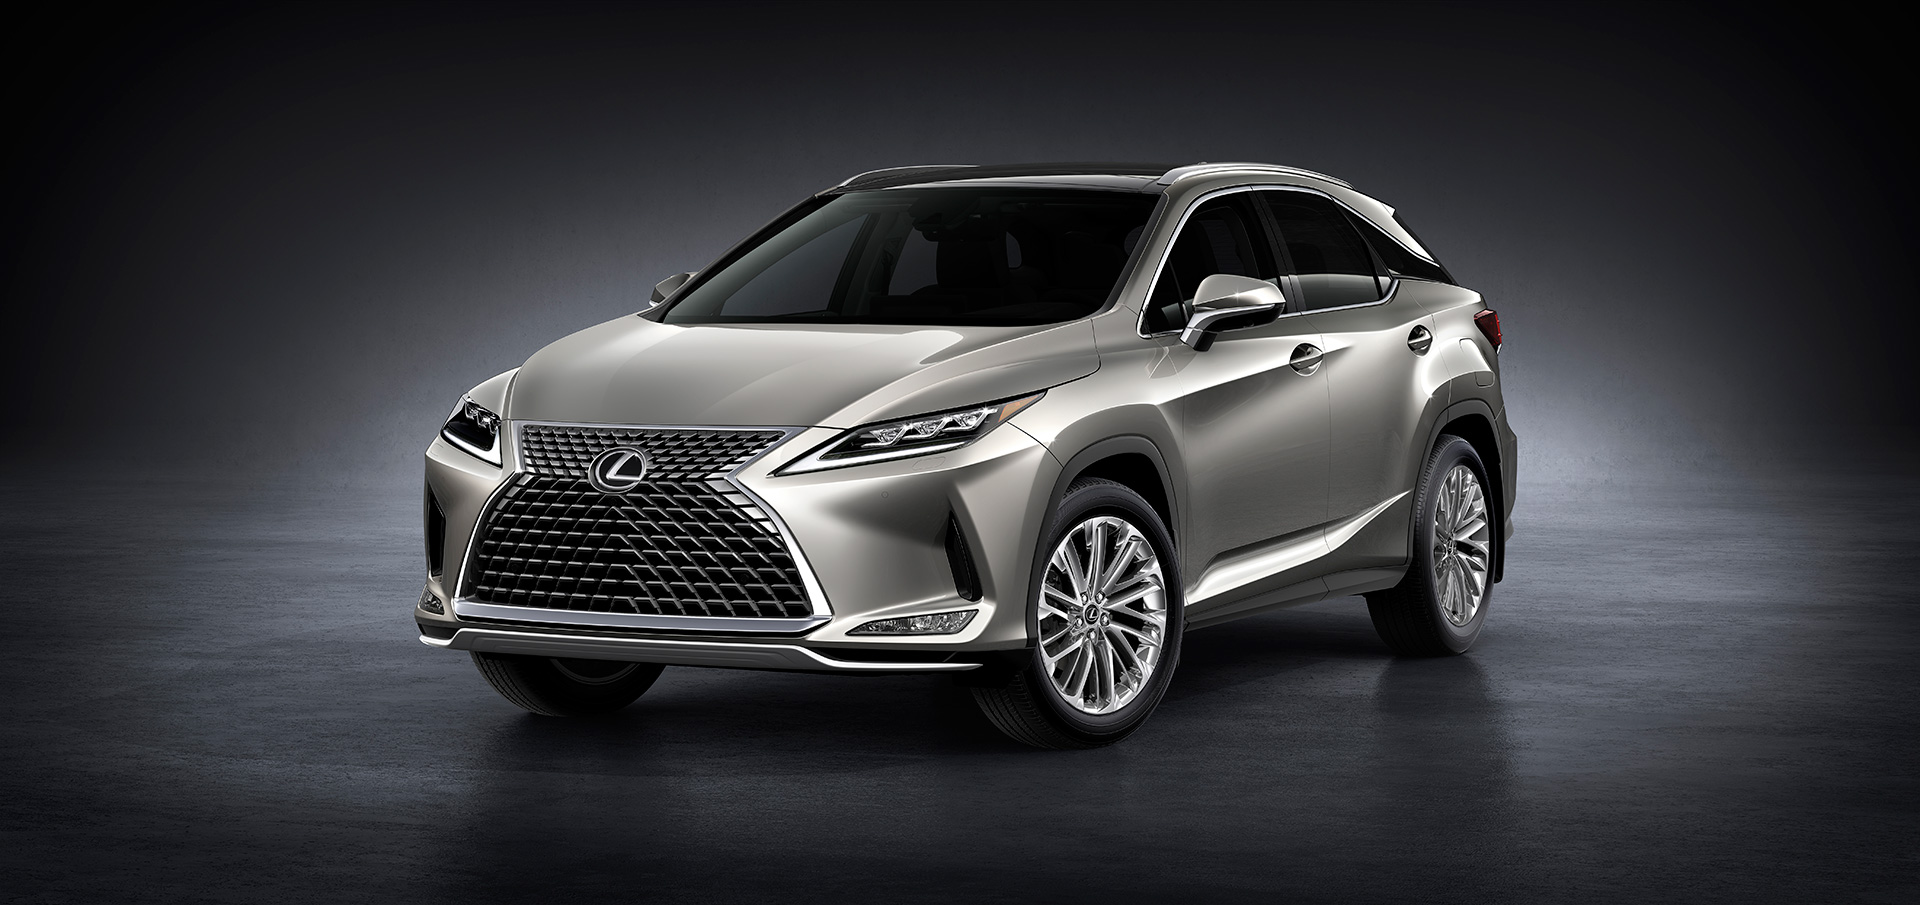 New Lexus RX Makes World DebutThe Pioneer of the Luxury SUV Segment Evolves to New Heights Equipped with the Latest Technology - Image 1